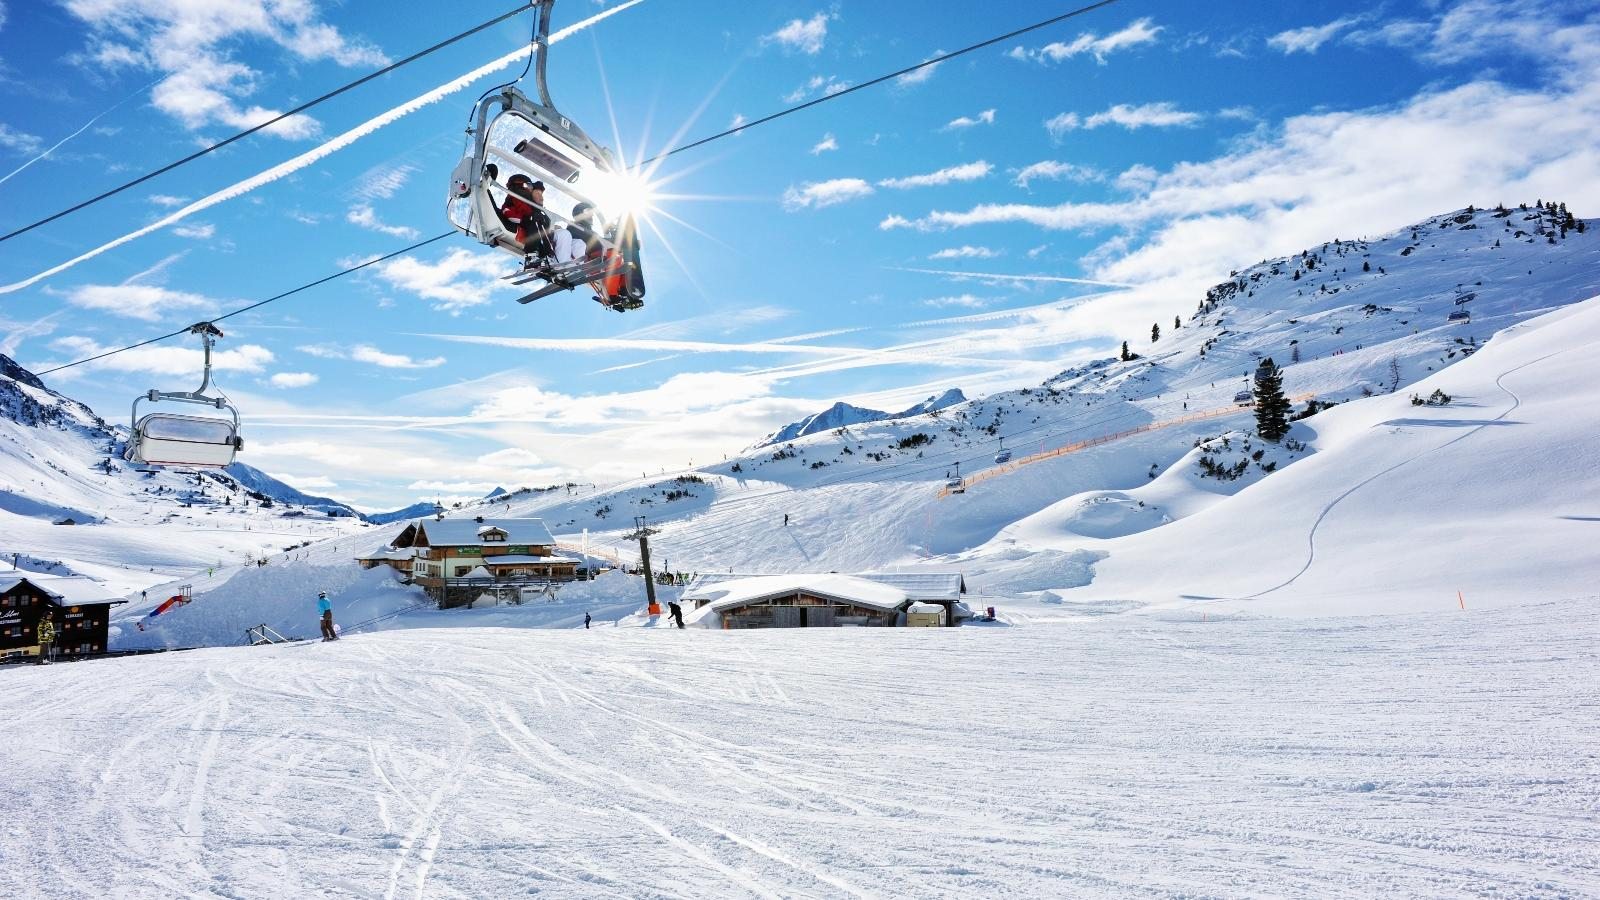 Essence Las Vegas >> Ski Holidays to Livigno, Italy | Topflight | Ireland's No ...